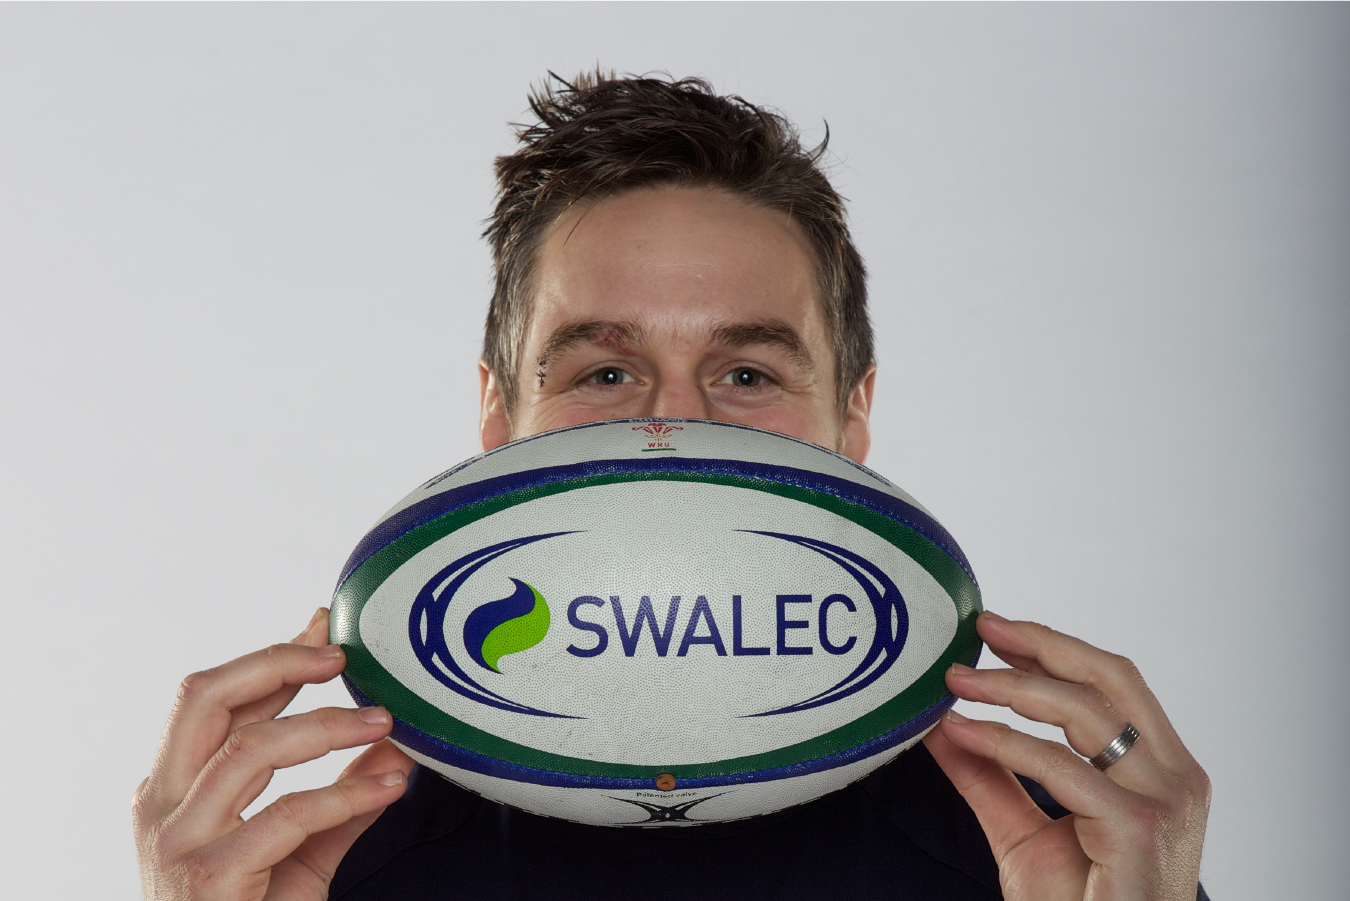 swalec_ryan_jones.png